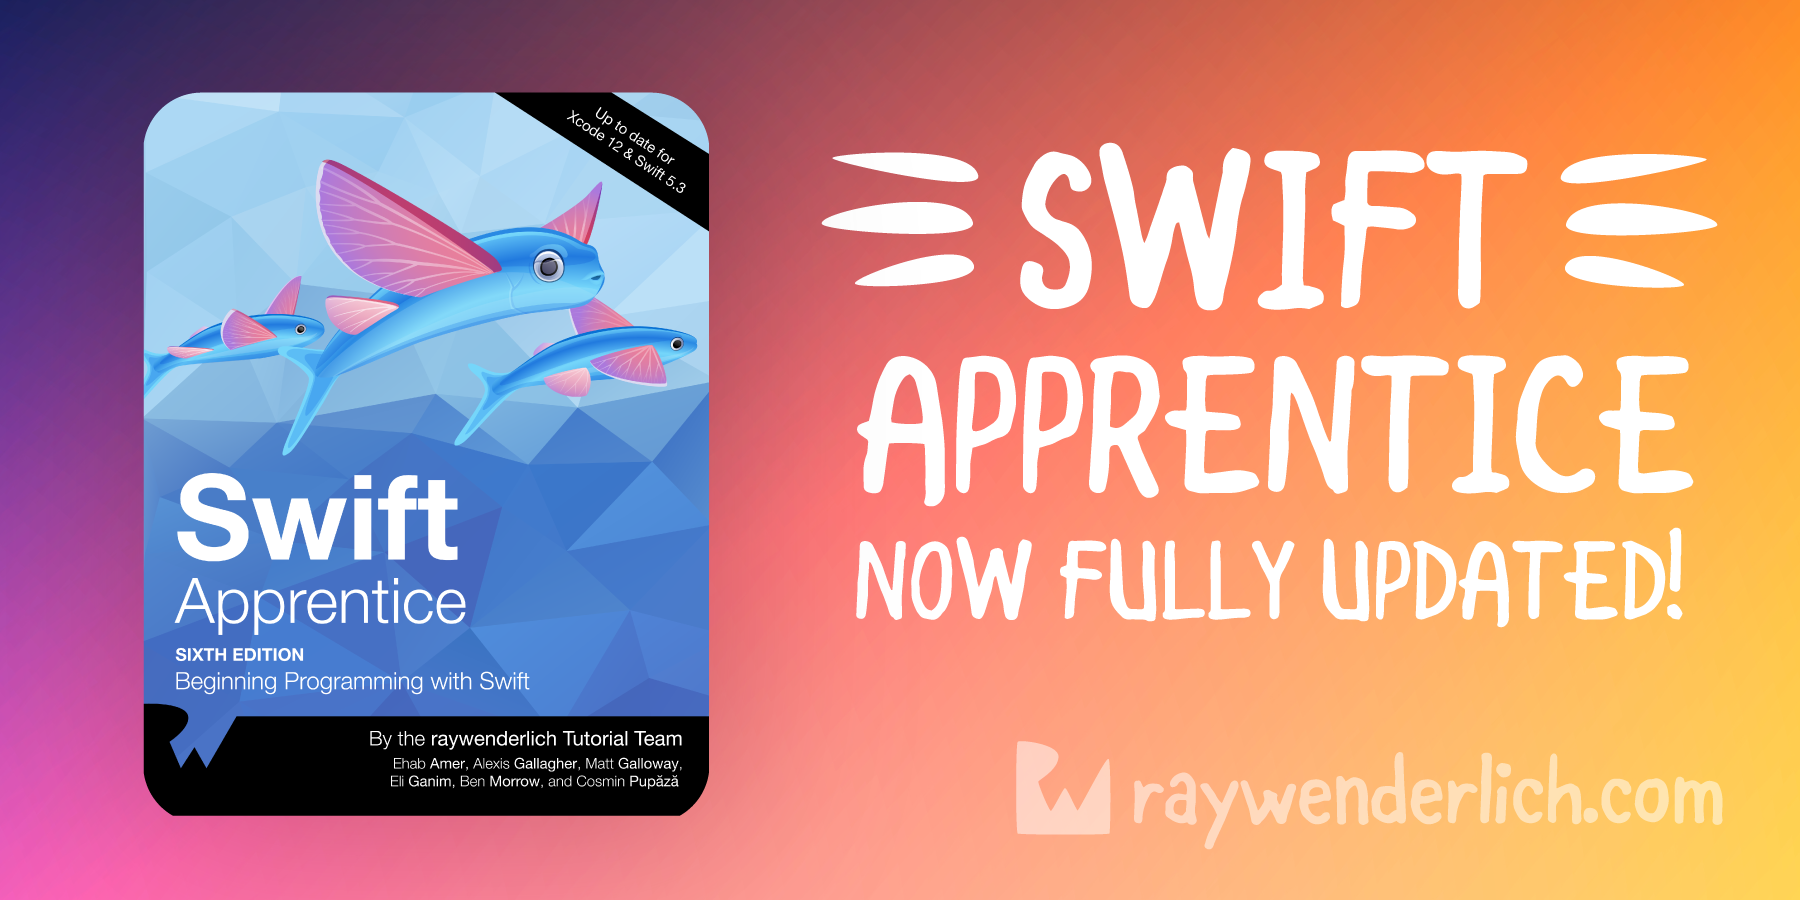 Swift Apprentice, 6th Edition, Is Now Fully Updated! [FREE]